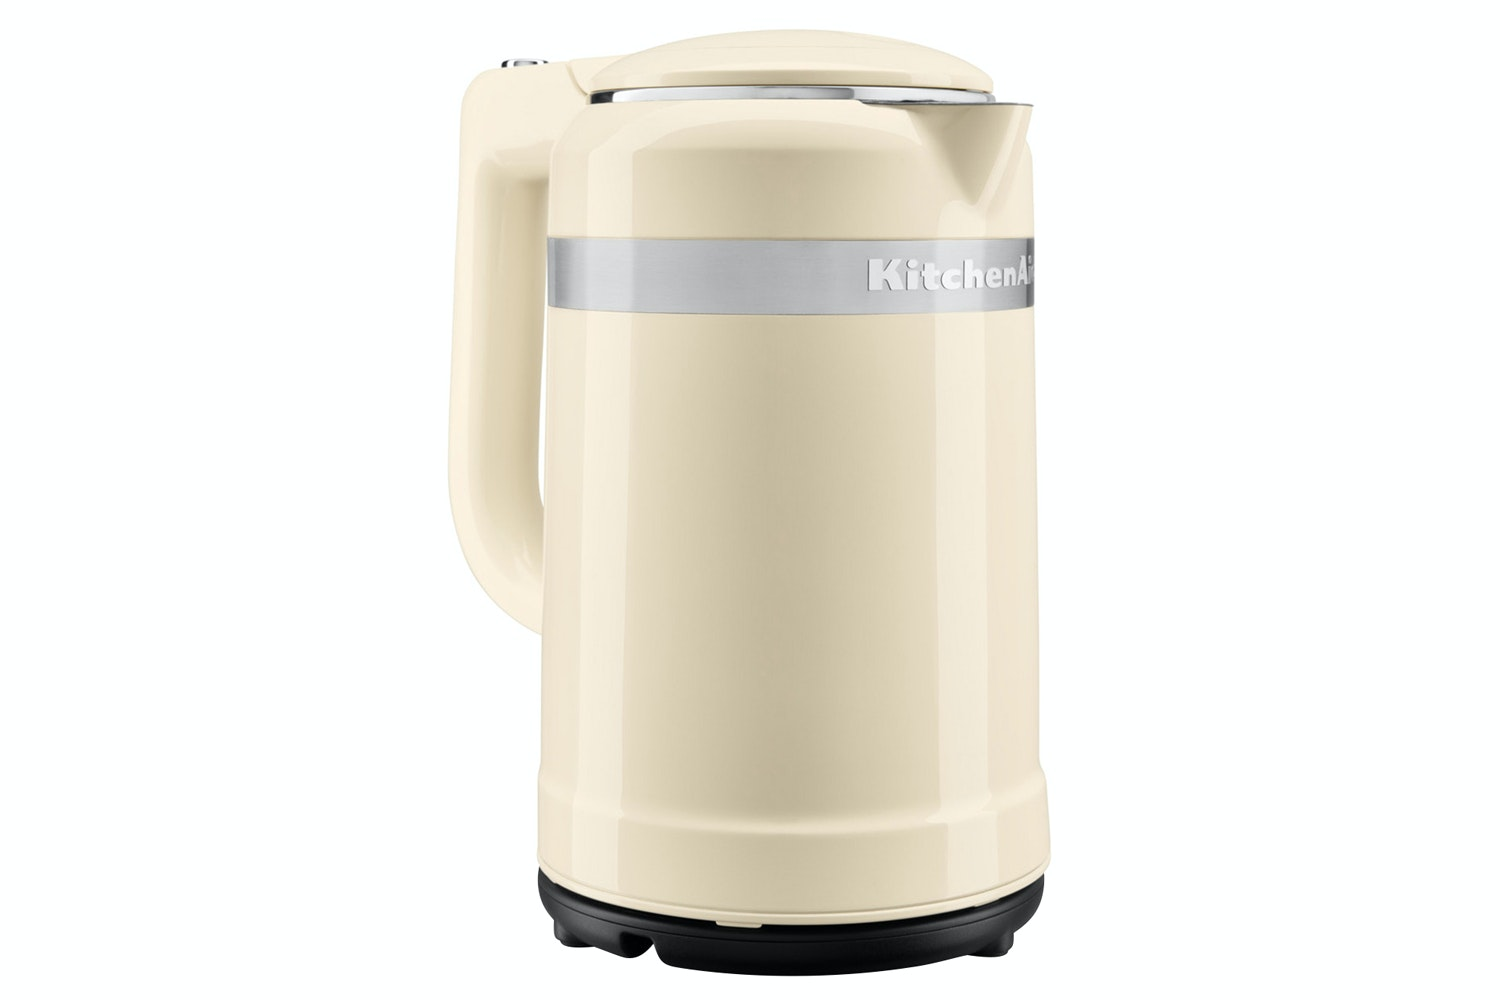 KitchenAid 1.5L Loft Kettle | 5KEK1565BAC | Almond Cream